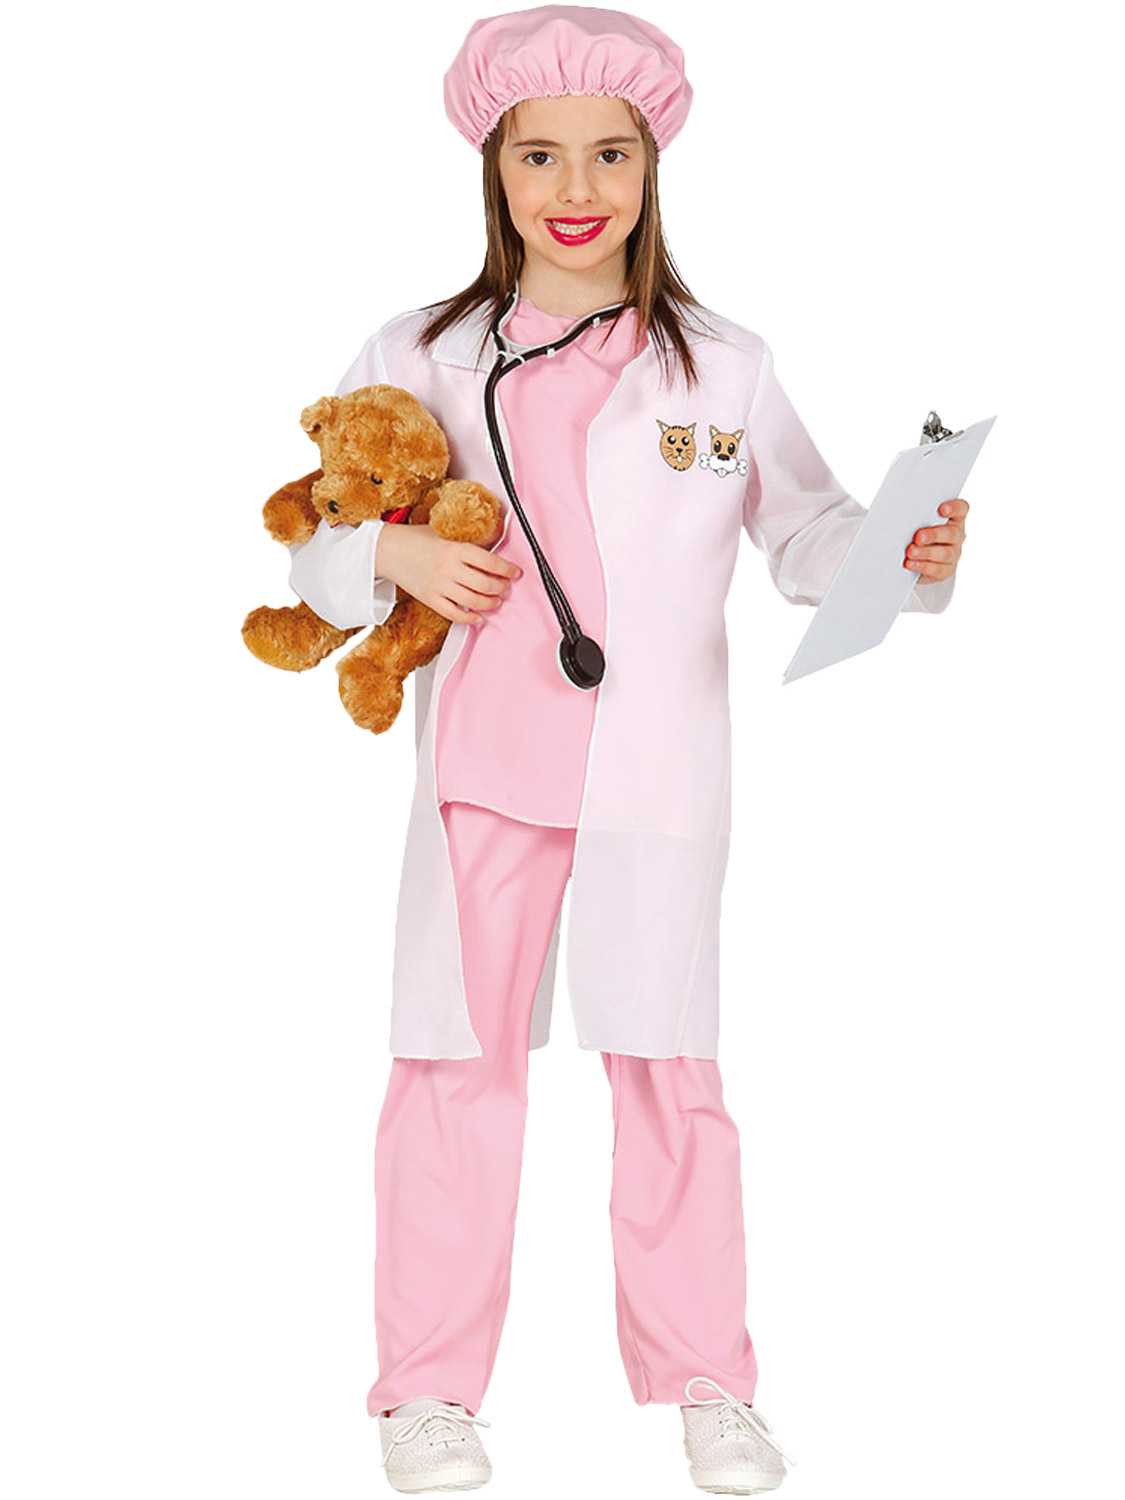 Girls-Vet-Costume-Childs-Animal-Doctor-Fancy-Dress-Kids-Book-Week-Day-Outfit 縮圖 6